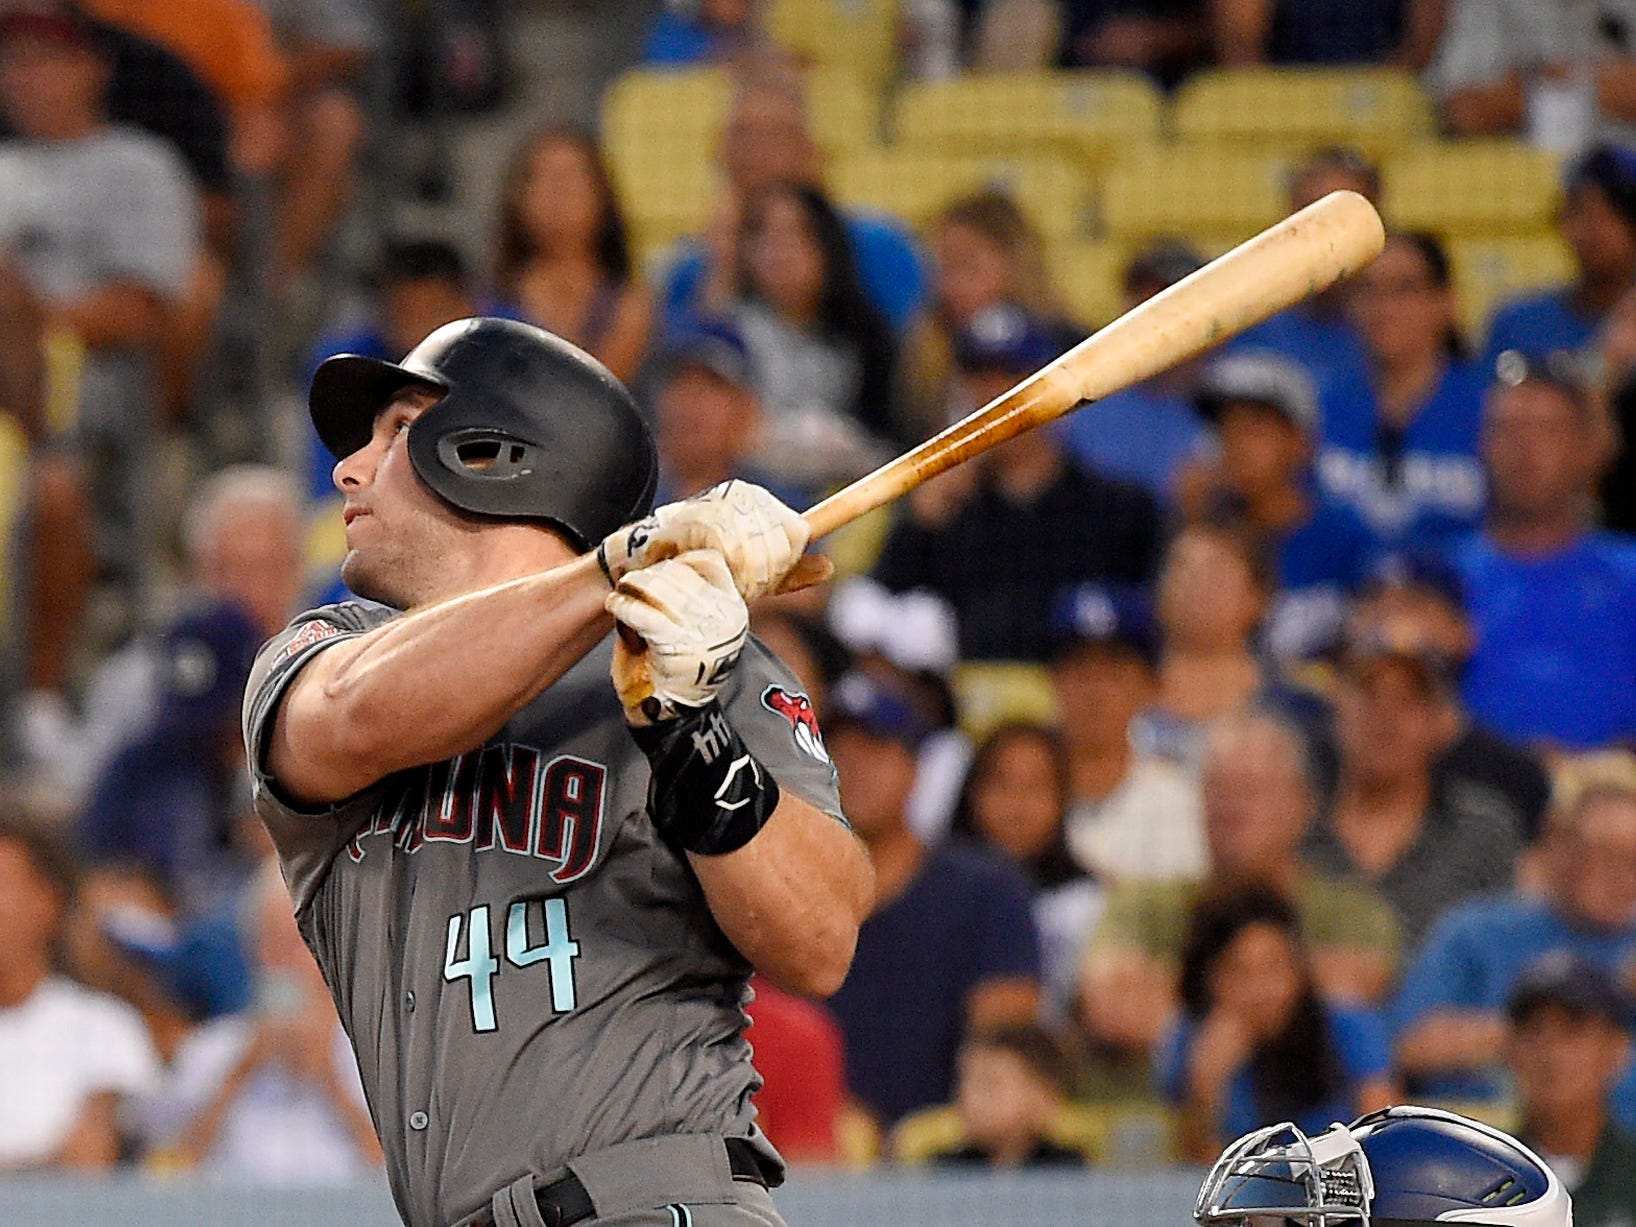 Arizona Diamondbacks' Paul Goldschmidt hits a two-run home run during the first inning of a baseball game against the Los Angeles Dodgers, Friday, Aug. 31, 2018, in Los Angeles.